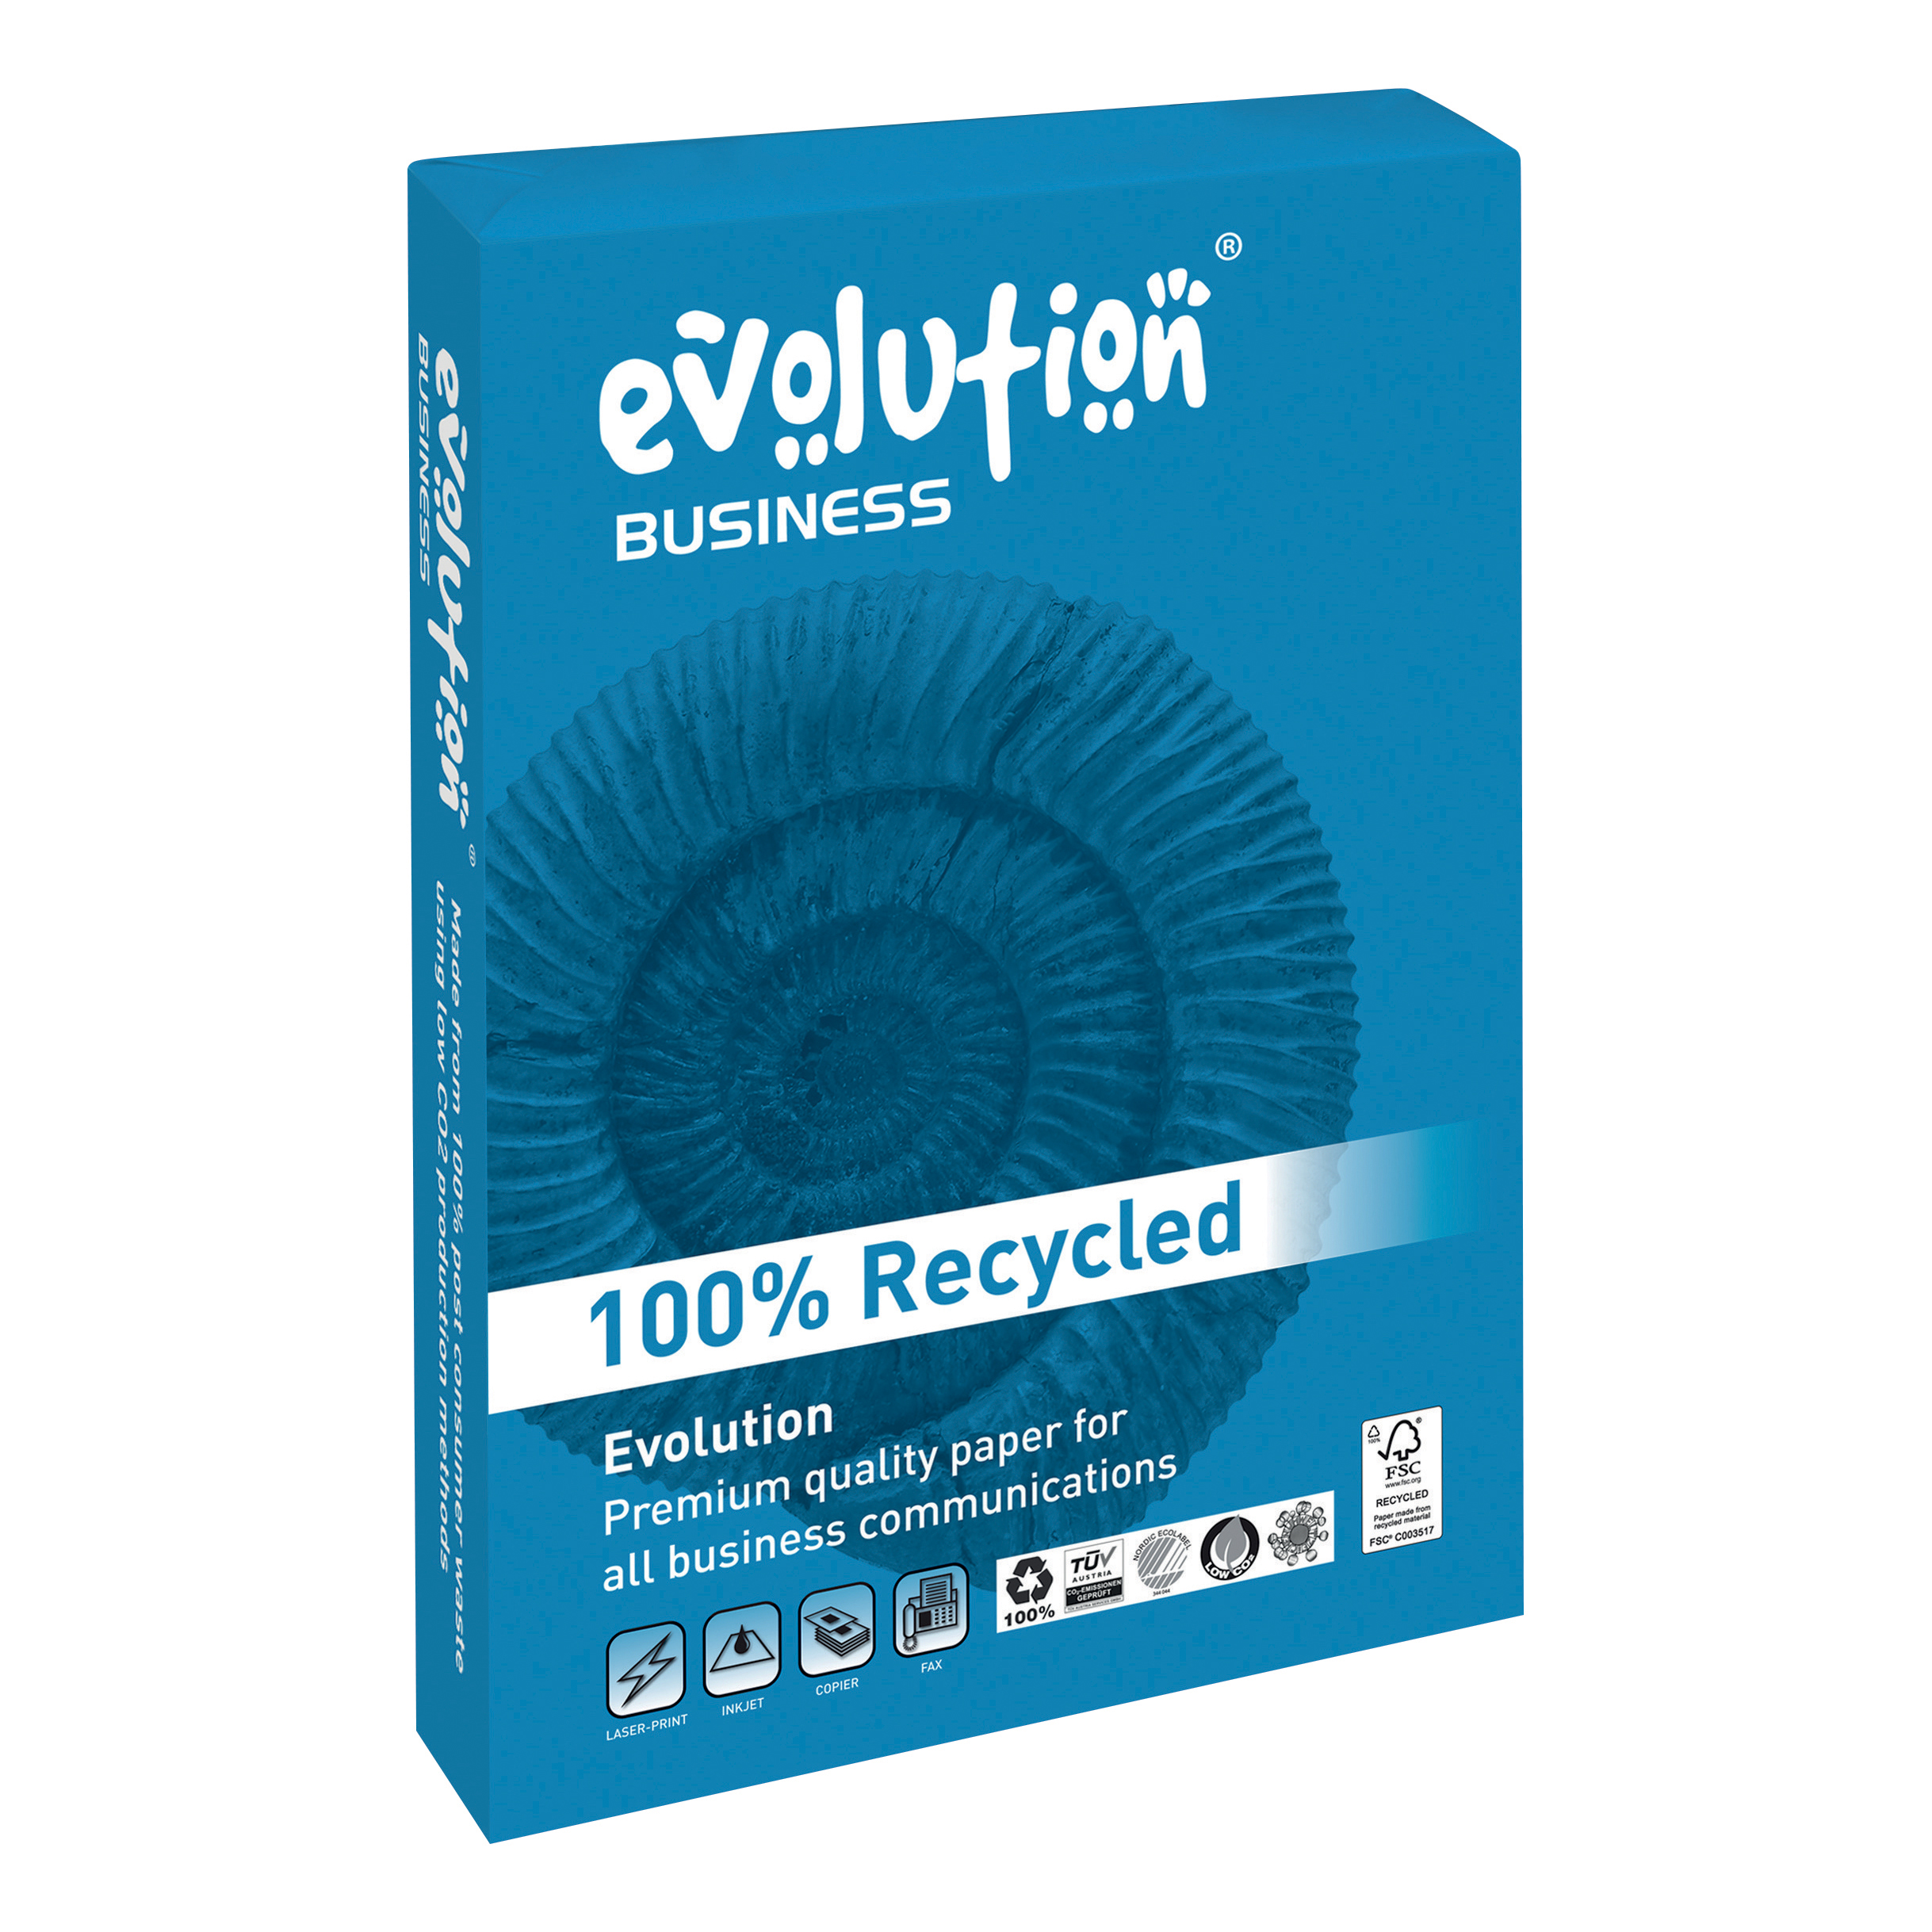 Evolution Business Recycled Paper 100gsm FSC A3 White Ref EVBU2100 [500 Sheets]